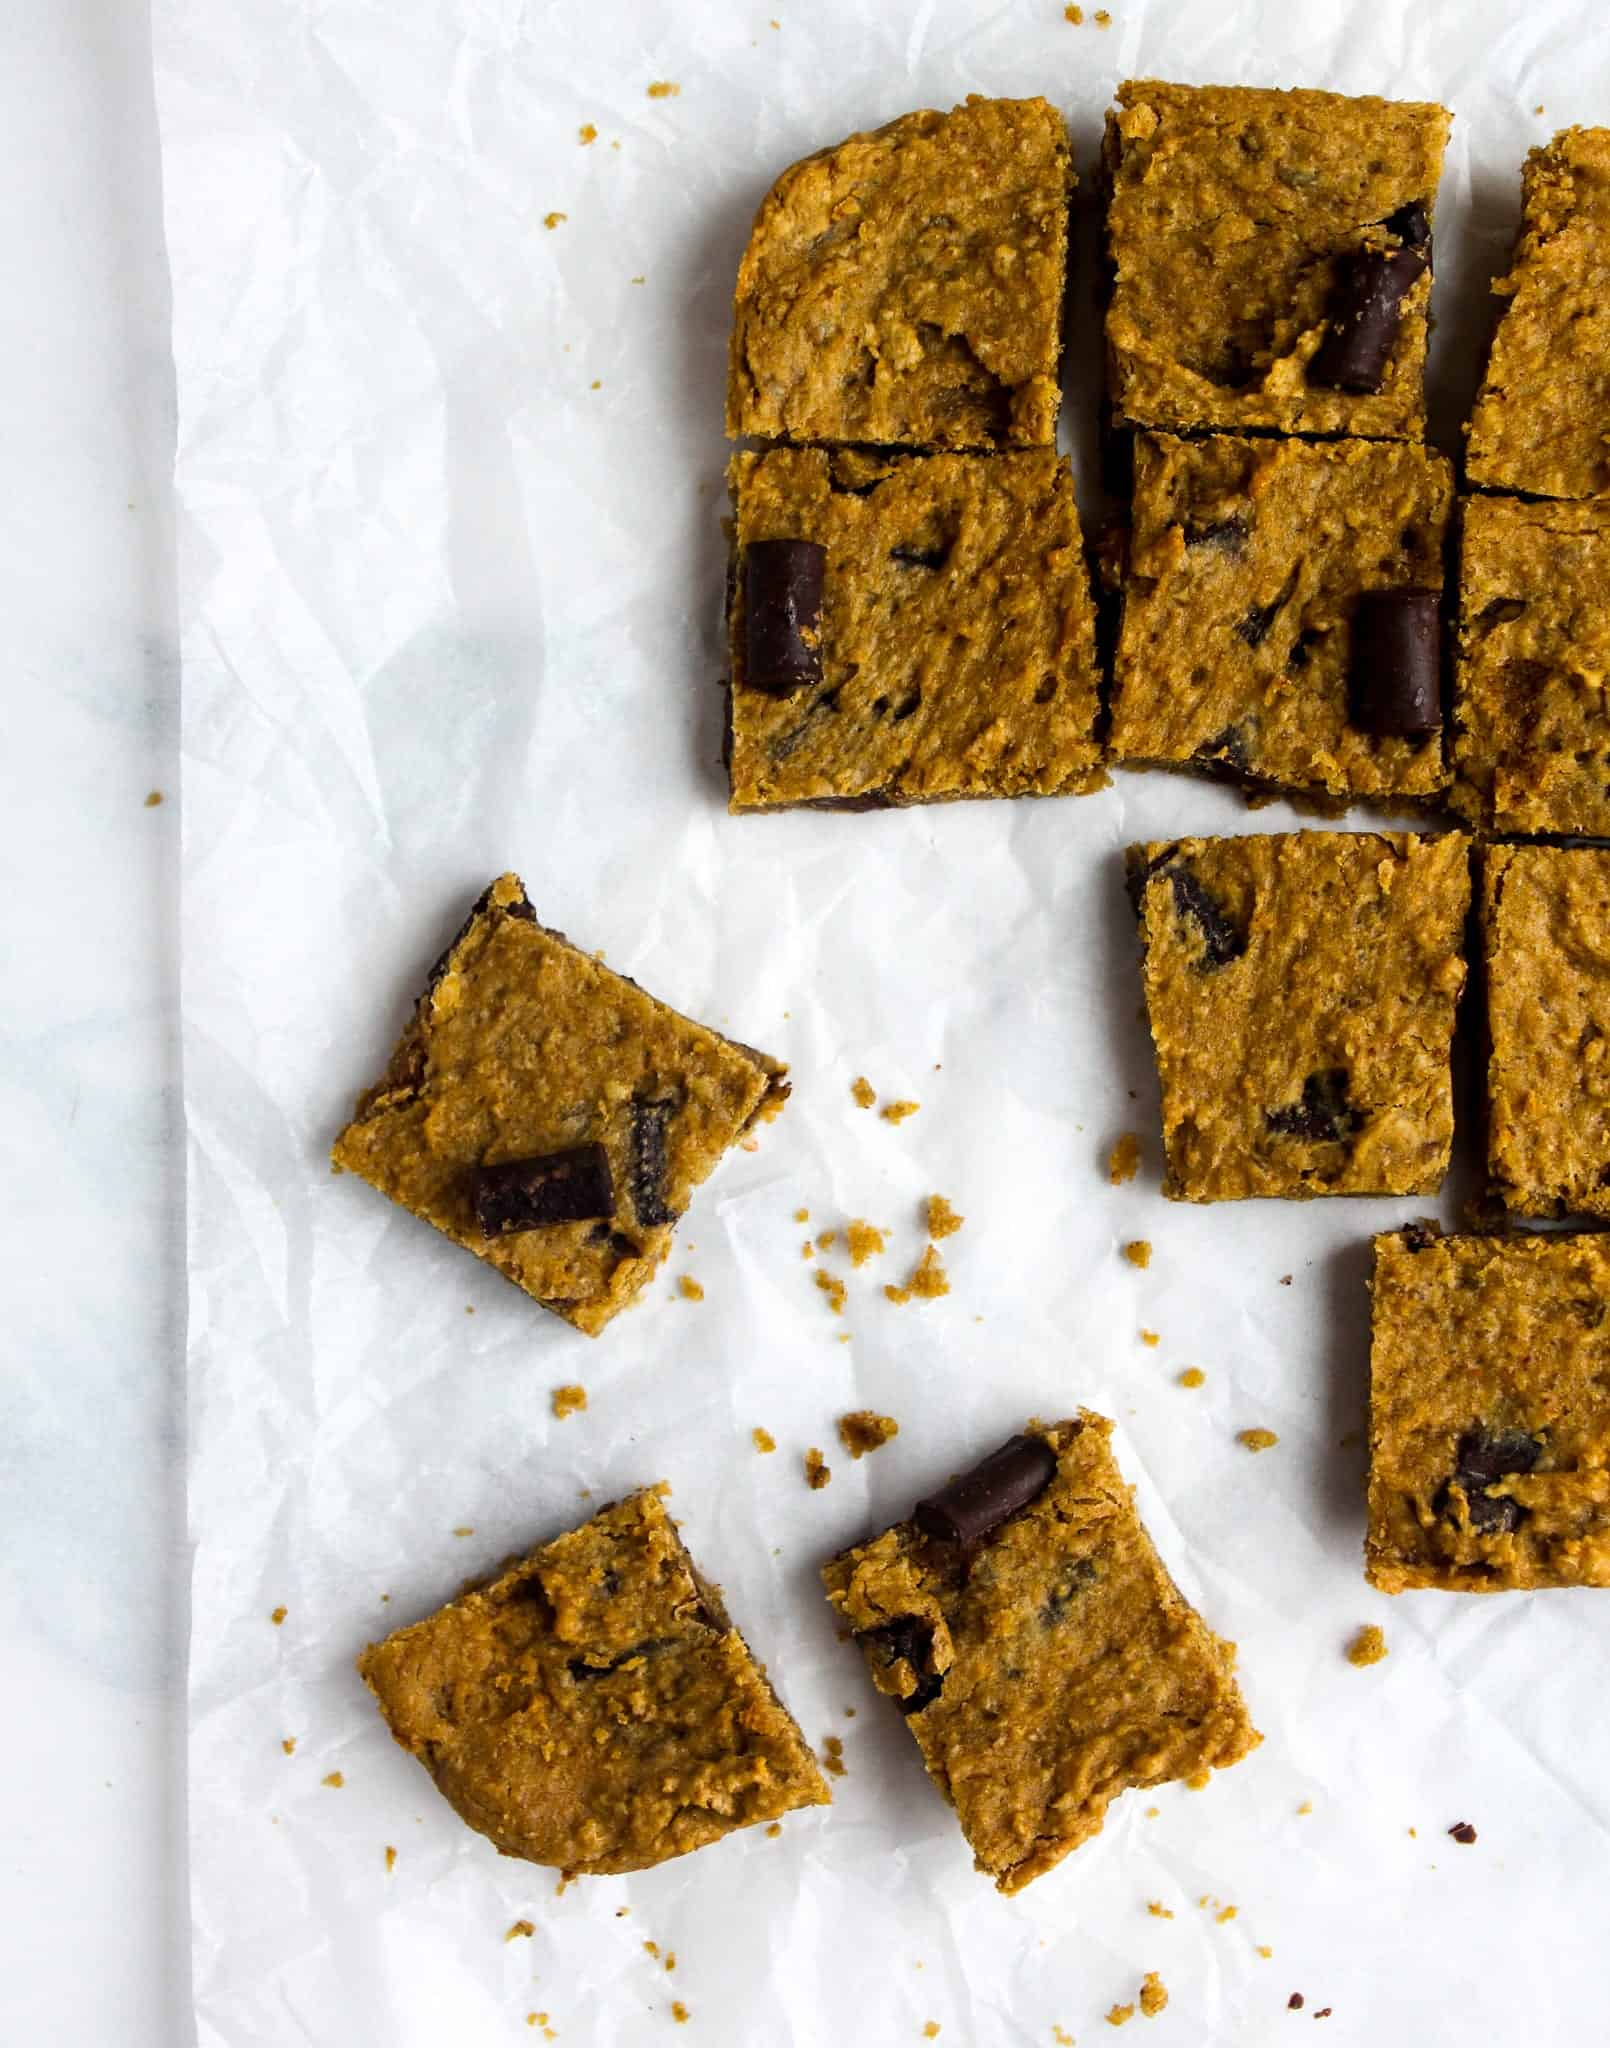 Chickpea Walnut Blondies - #glutenfree #grainfree #dairyfree #lowfodmap